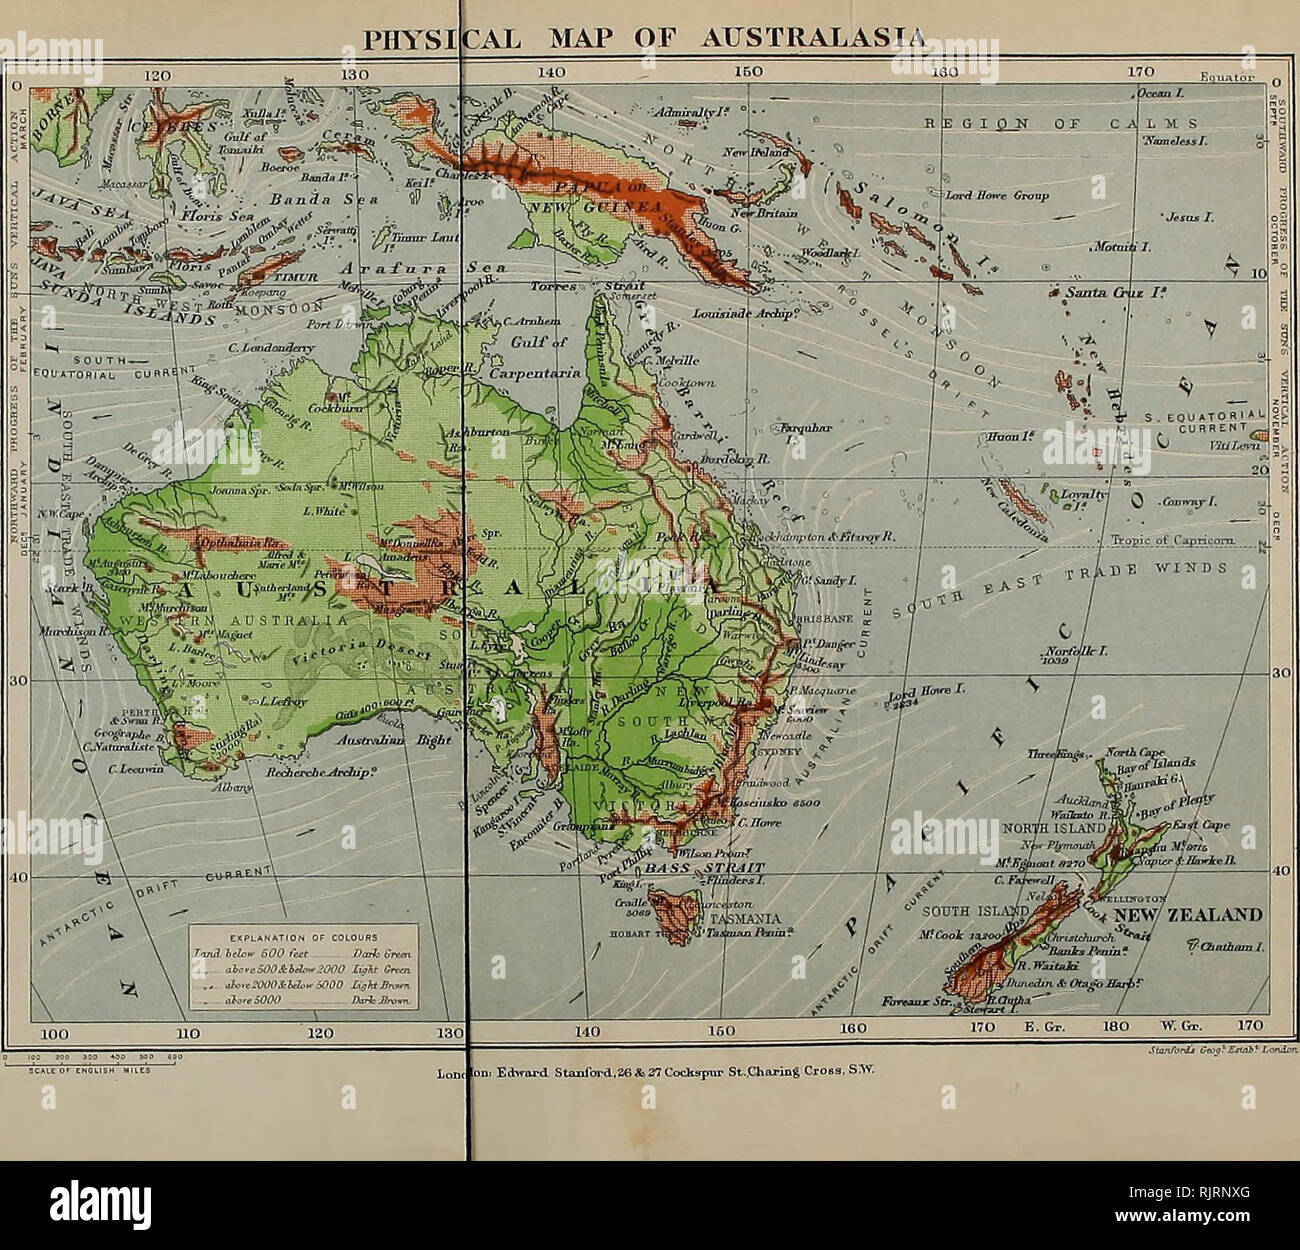 Physical Map Of New Zealand.Australia And New Zealand Natural History Natural History